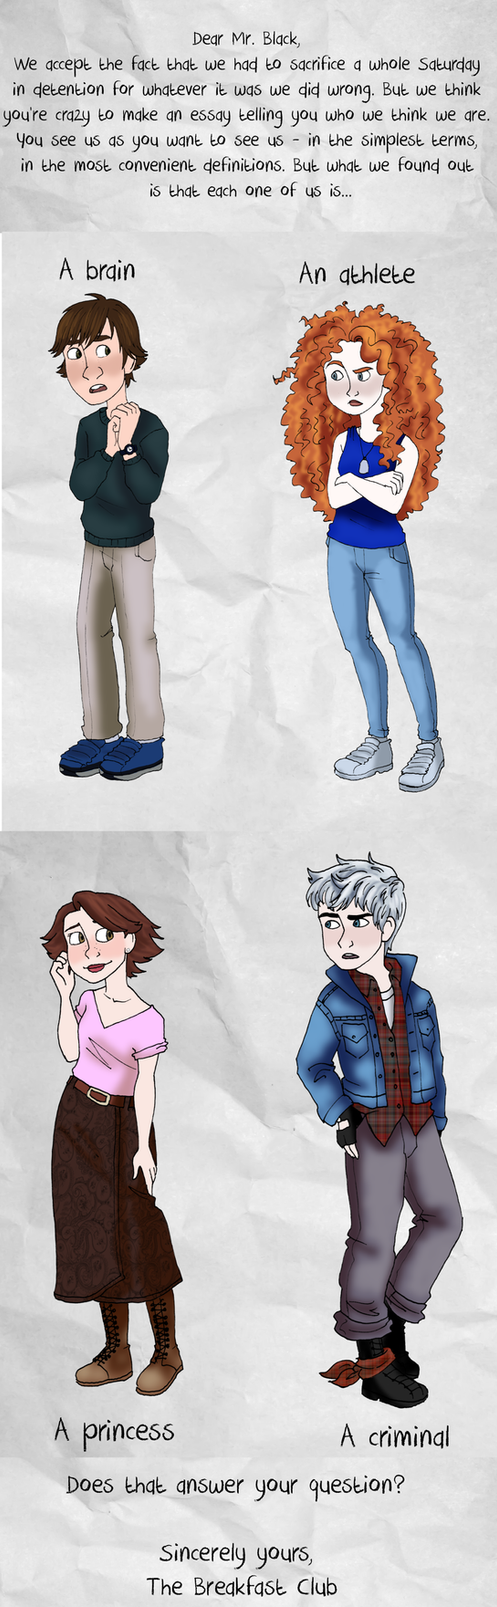 the breakfast club au by emkayoh on  the breakfast club au by emkayoh